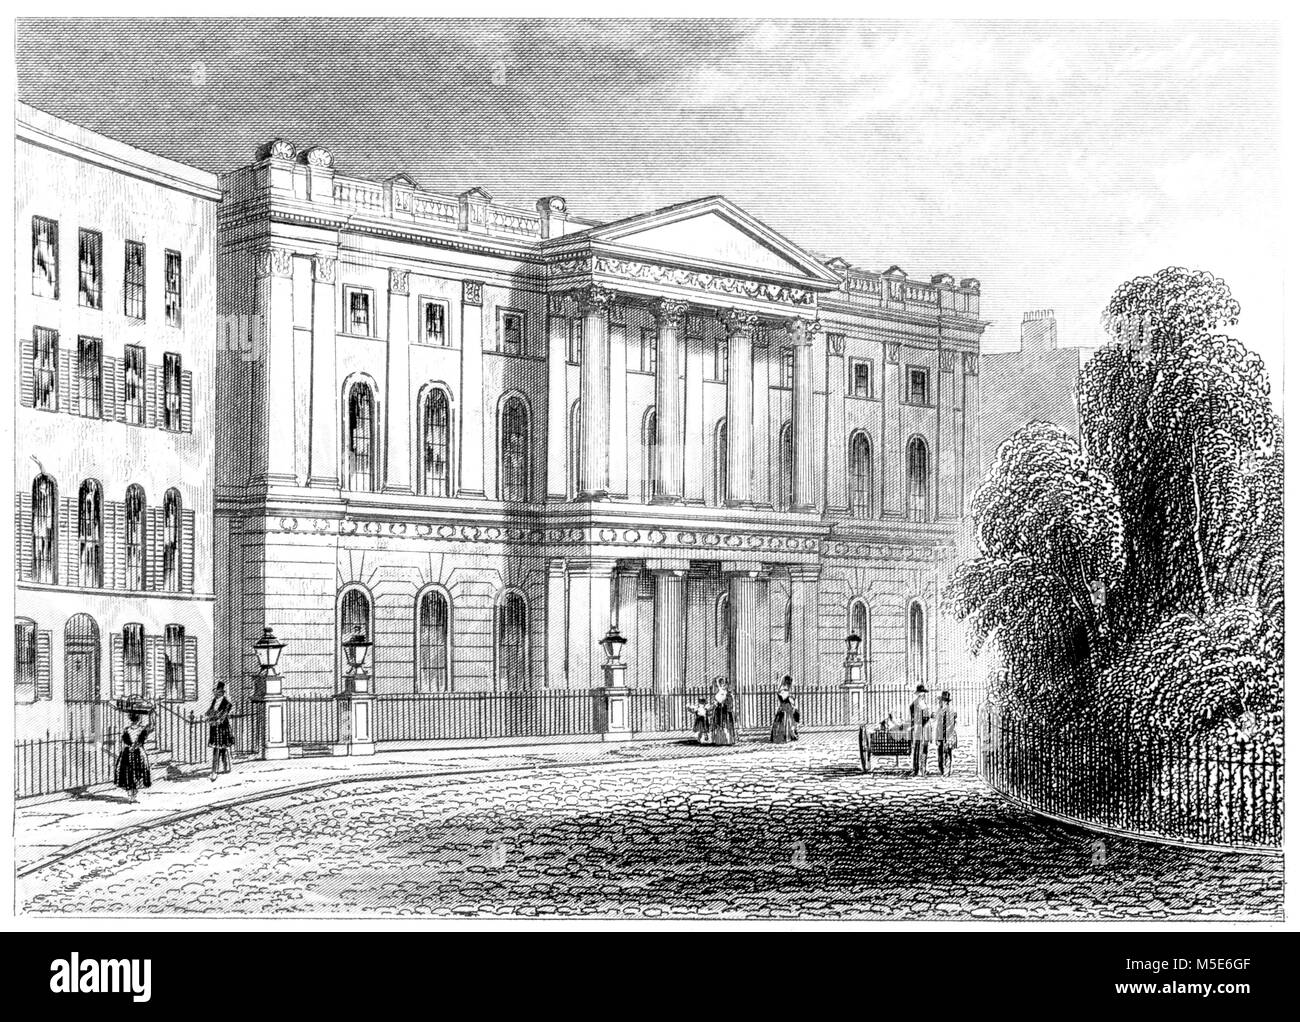 An engraving of the London Institution, Finsbury Circus, London scanned at high resolution from a book printed in - Stock Image